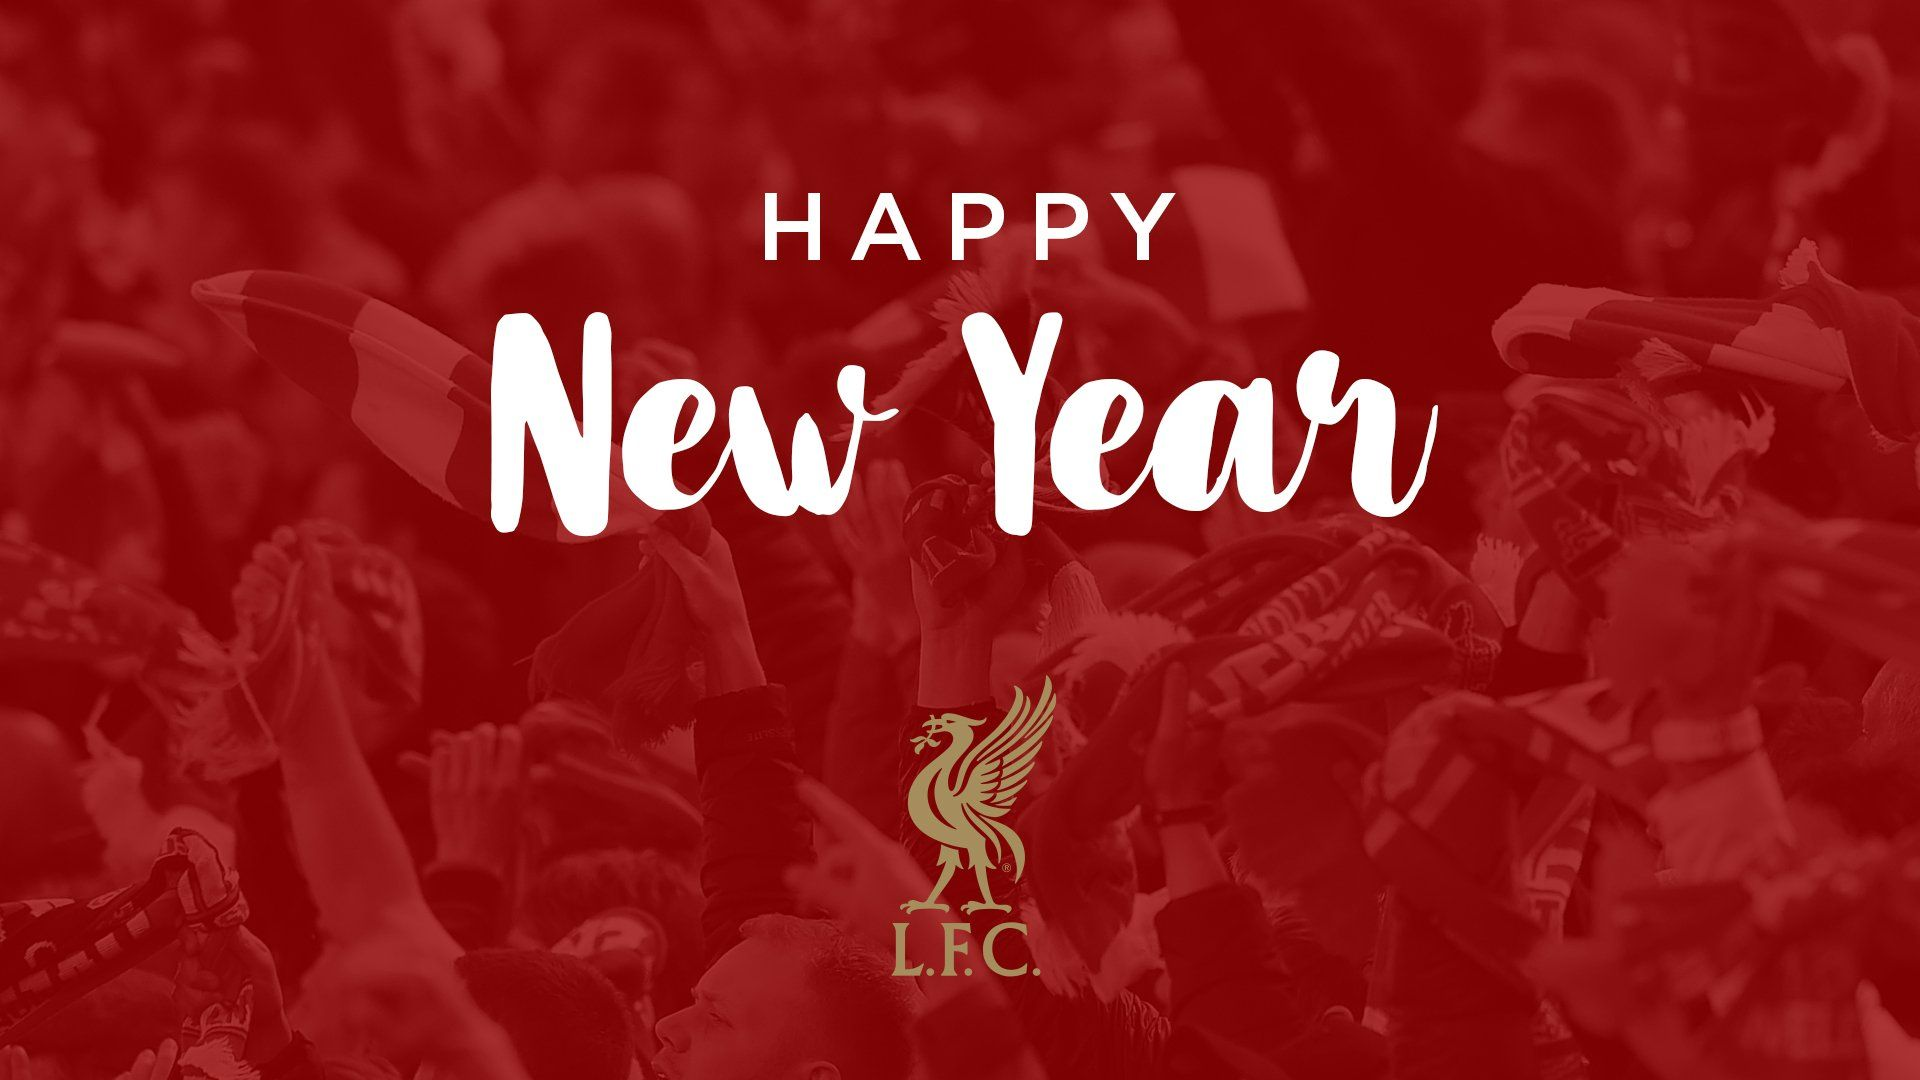 Pin on LFC for the Holidays